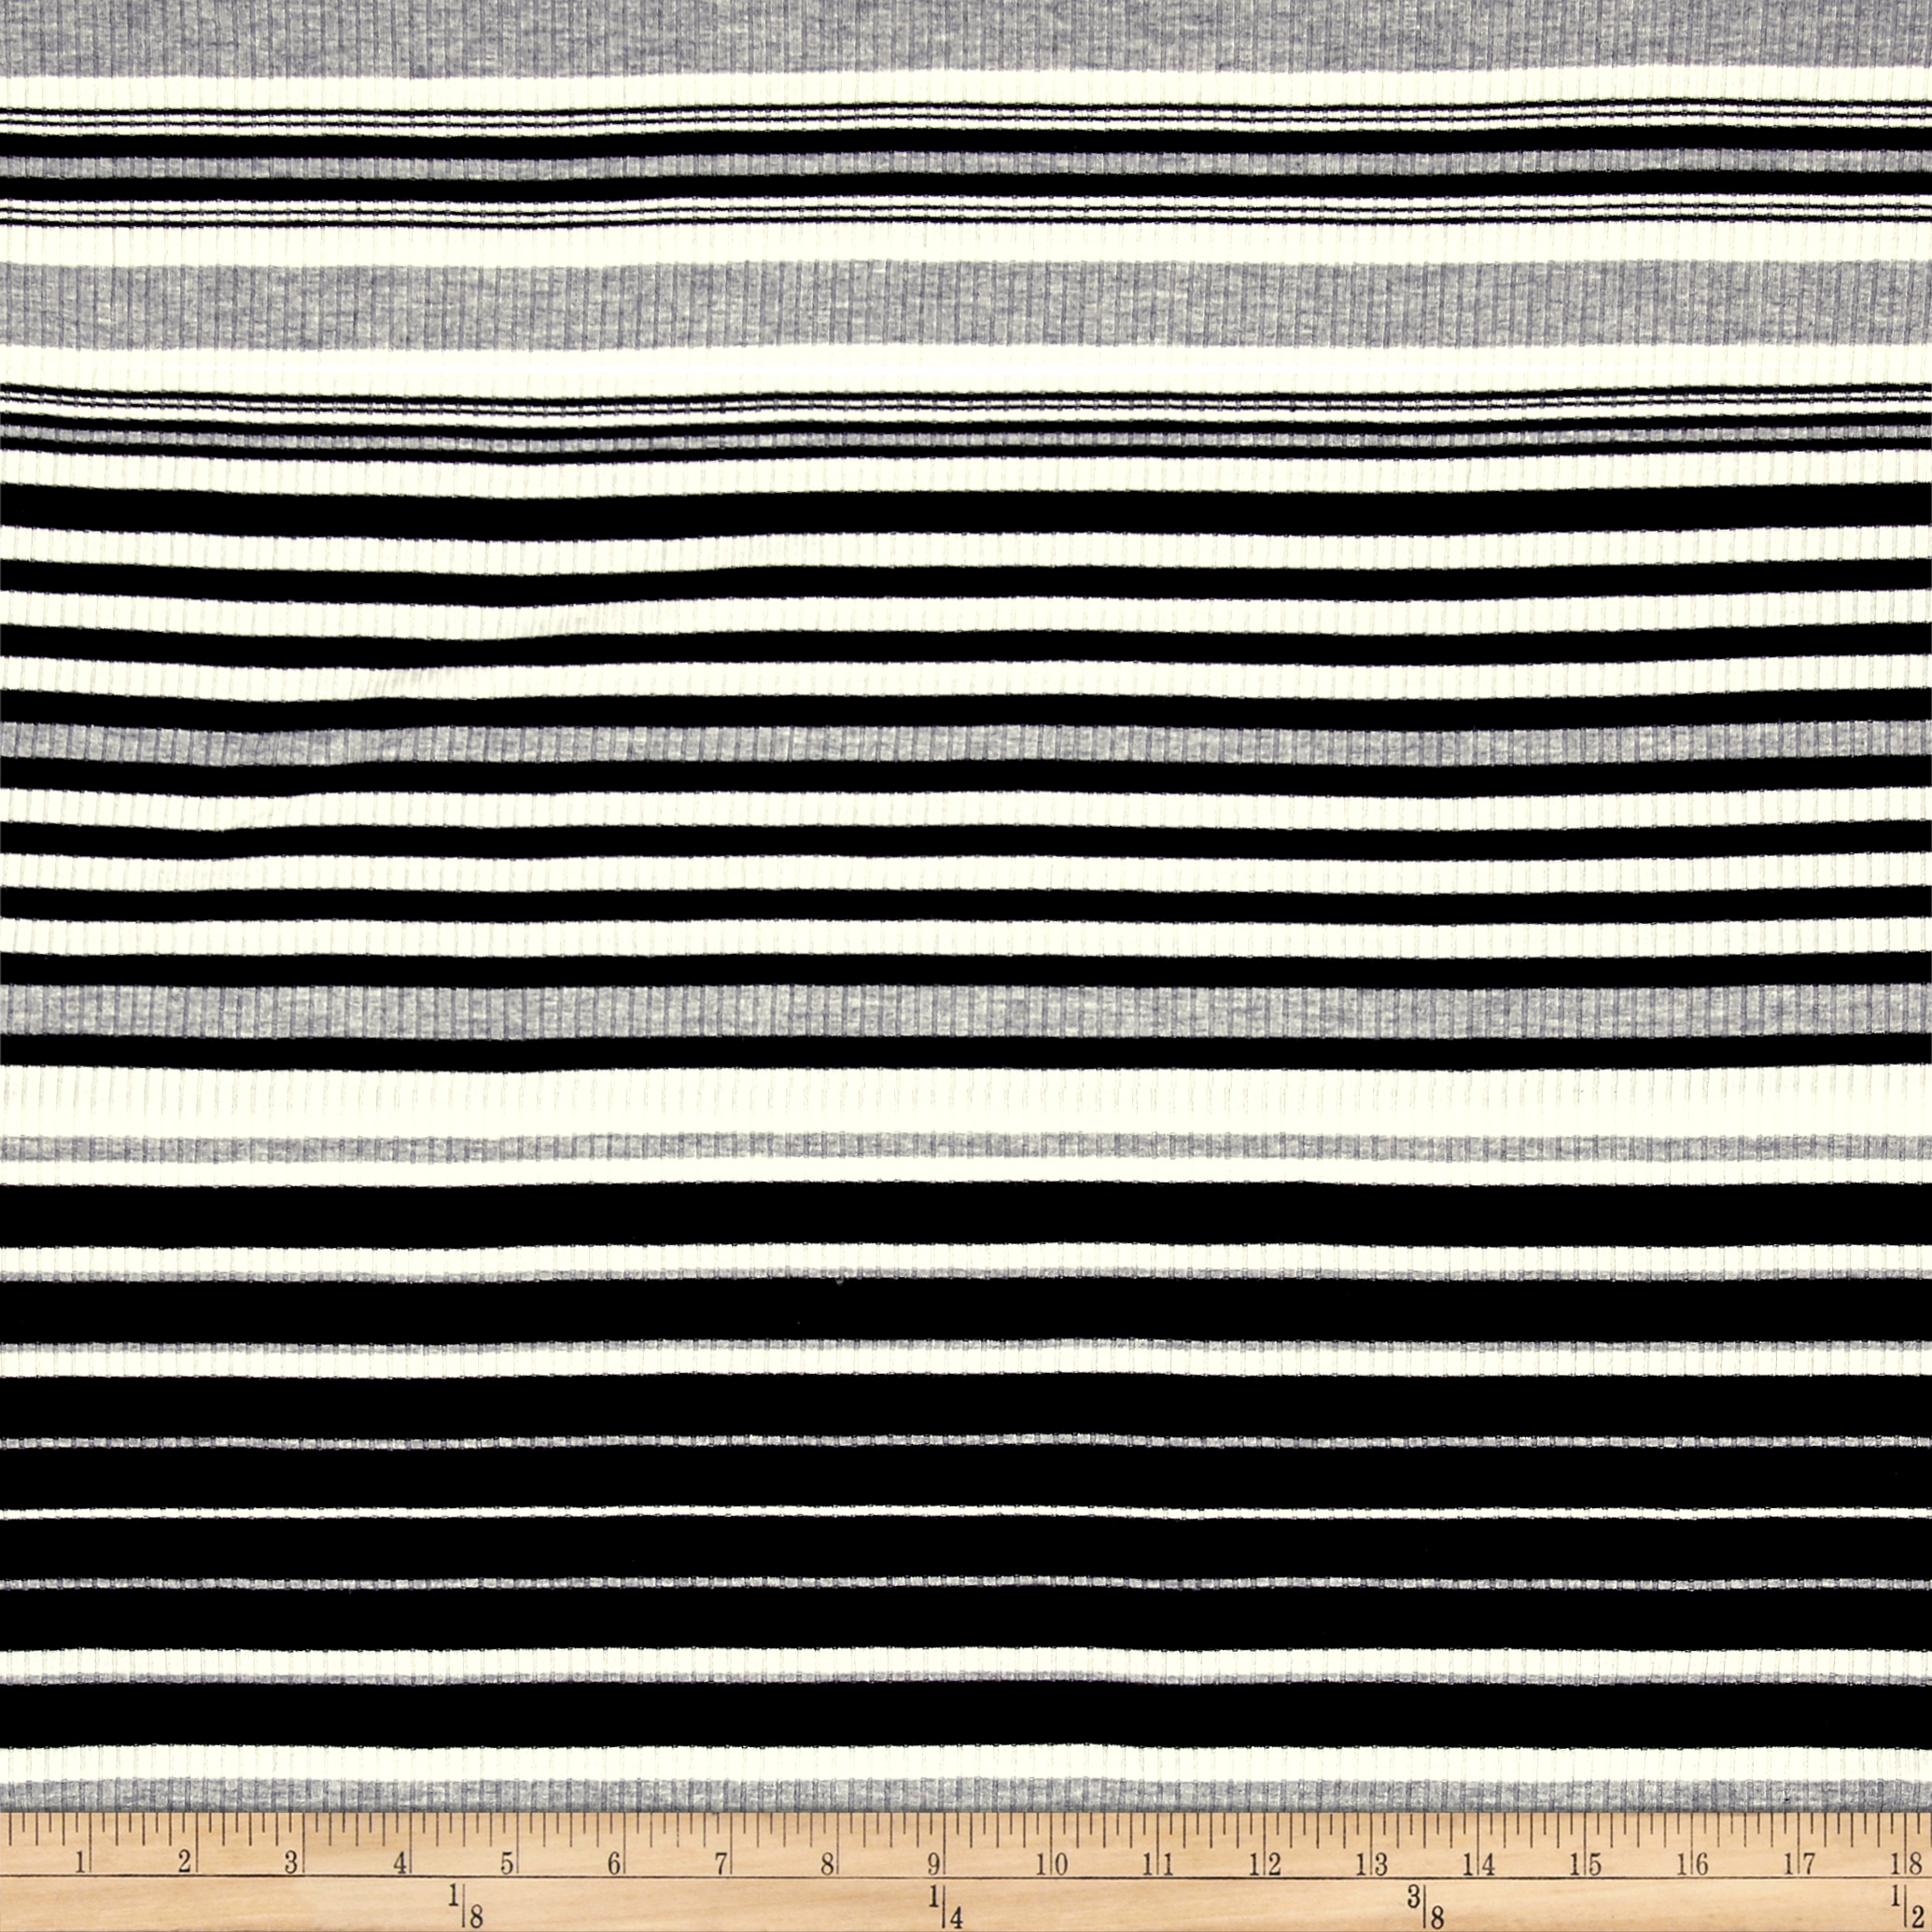 Rib Knit Yarn Dyed Stripe Black/Ivory/Heather Gray Fabric 0490556